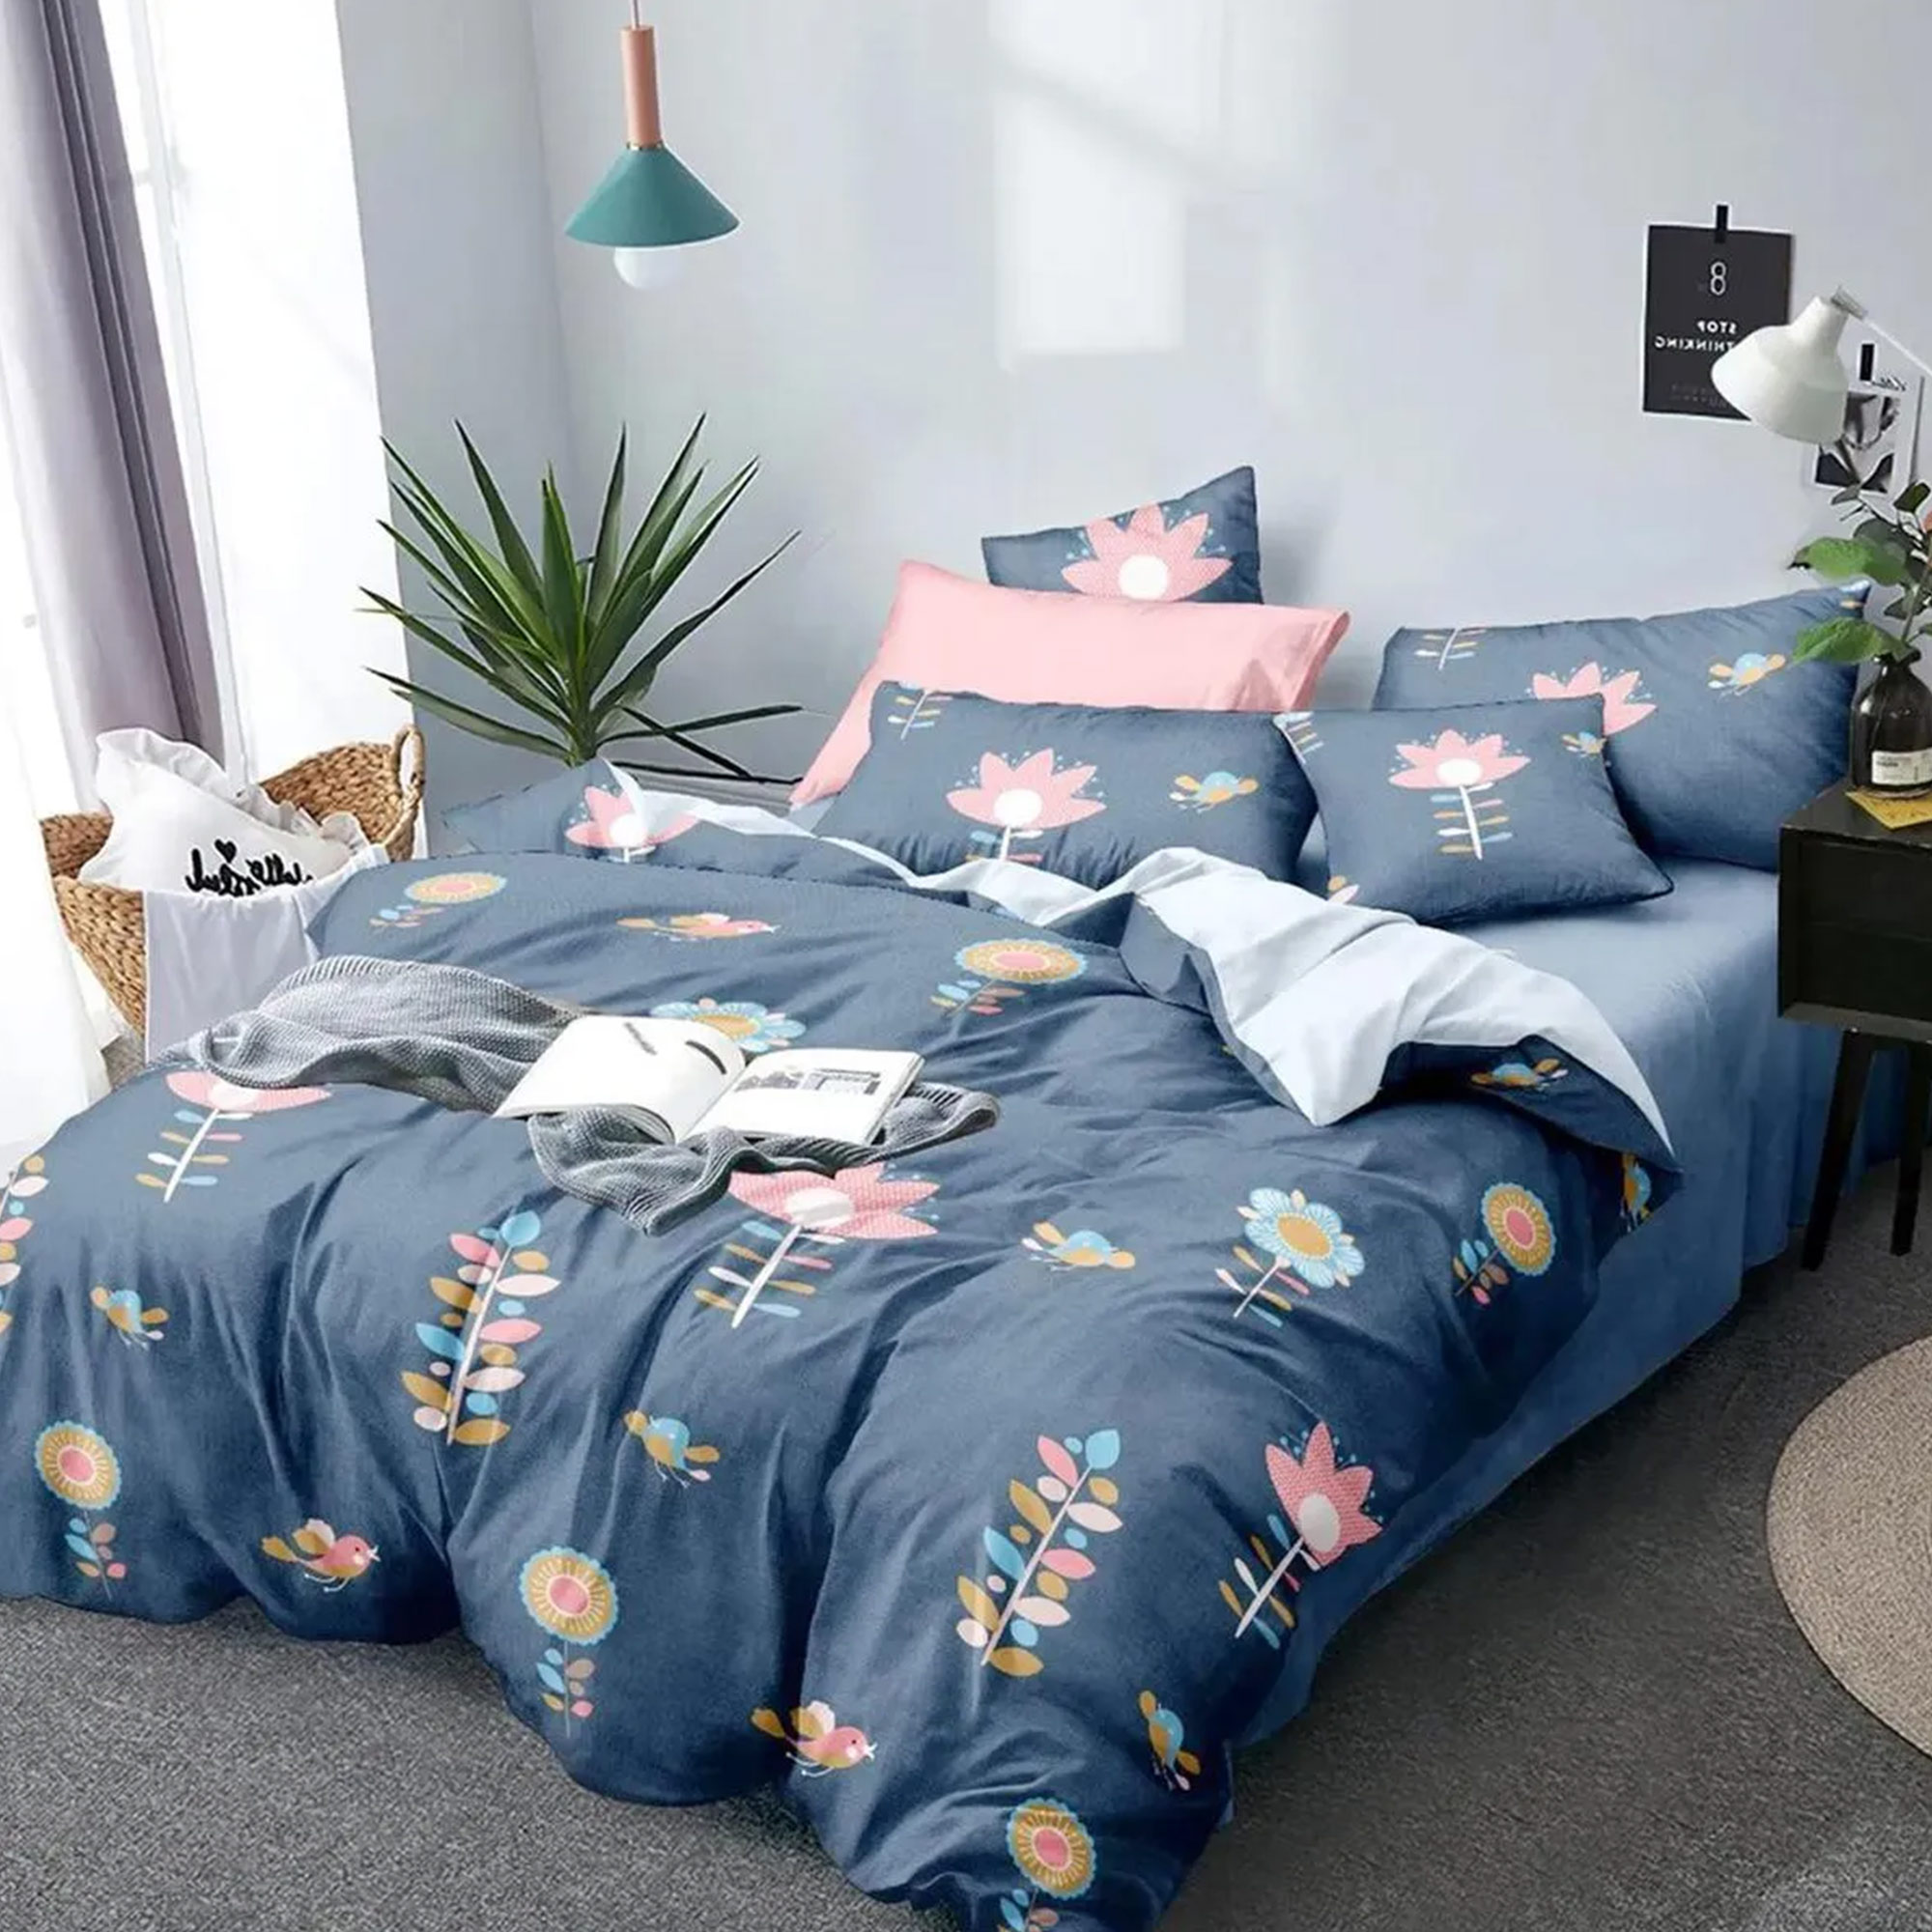 Trendy Printed Bed Sheets With 2 Pillow Covers - Pack of 2